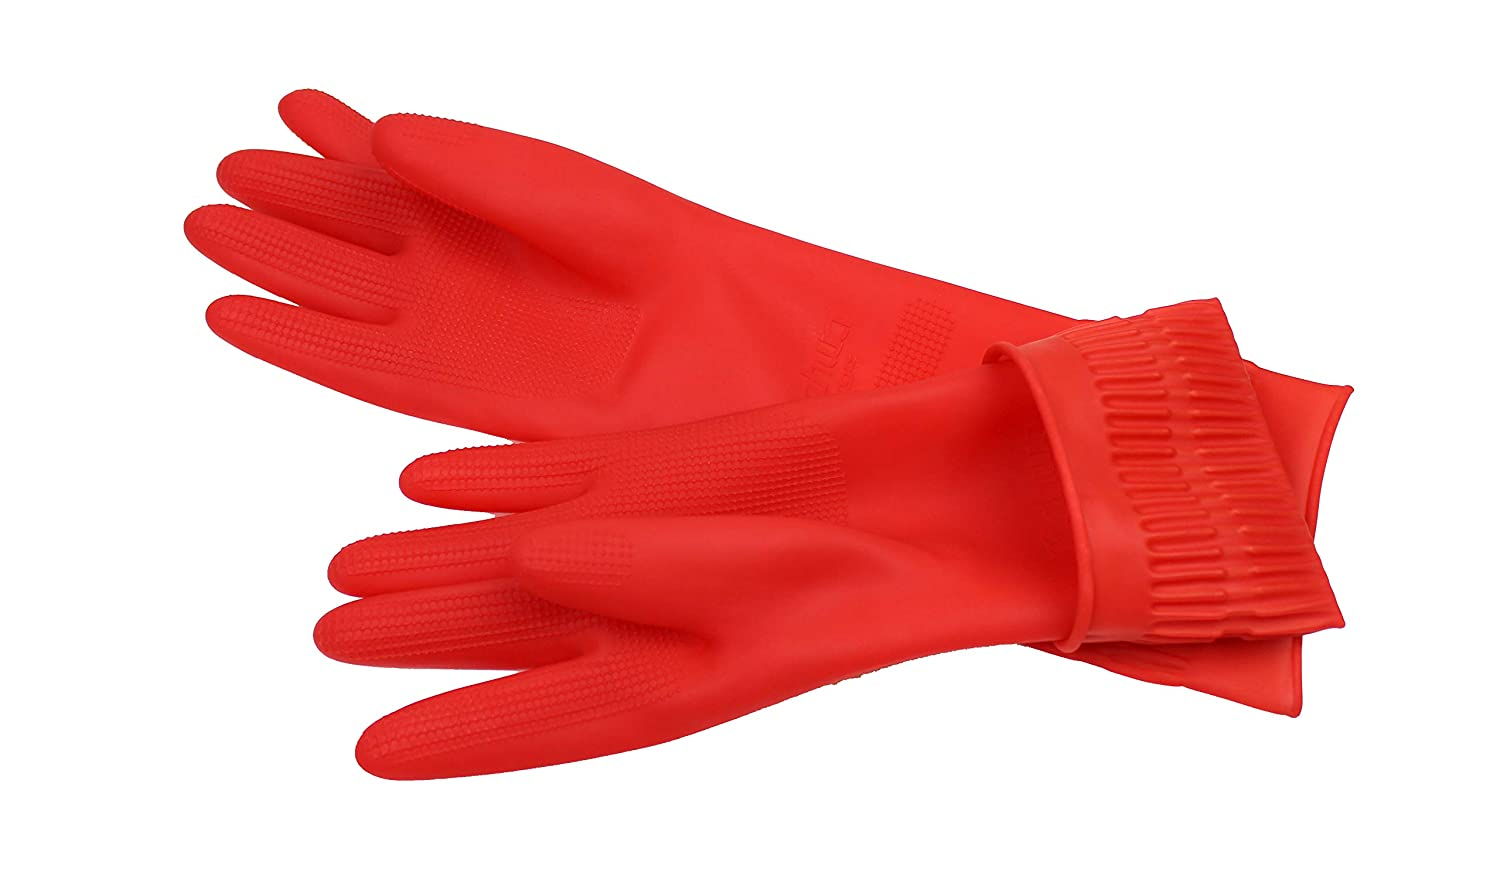 Made in Korea Rubber Cleaning Gloves Kitchen Dishwashing Glove 3-Pair,Waterproof Reuseable Large